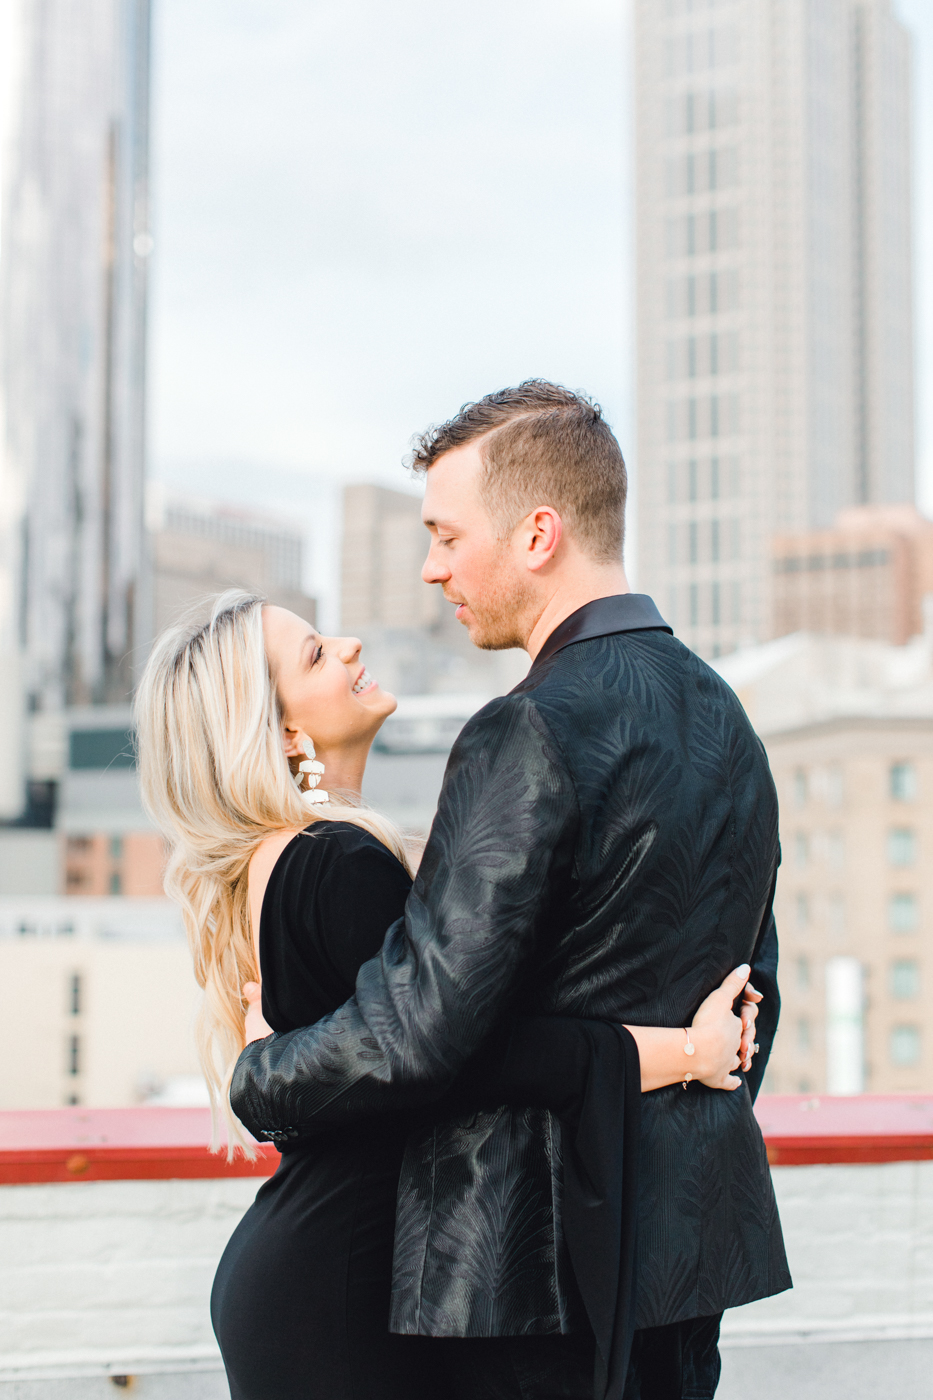 four corners photography best atlanta wedding photographer downtown atlanta engagement session engagement proposal ventanas downtown atlanta wedding atlanta wedding photographer-13.jpg